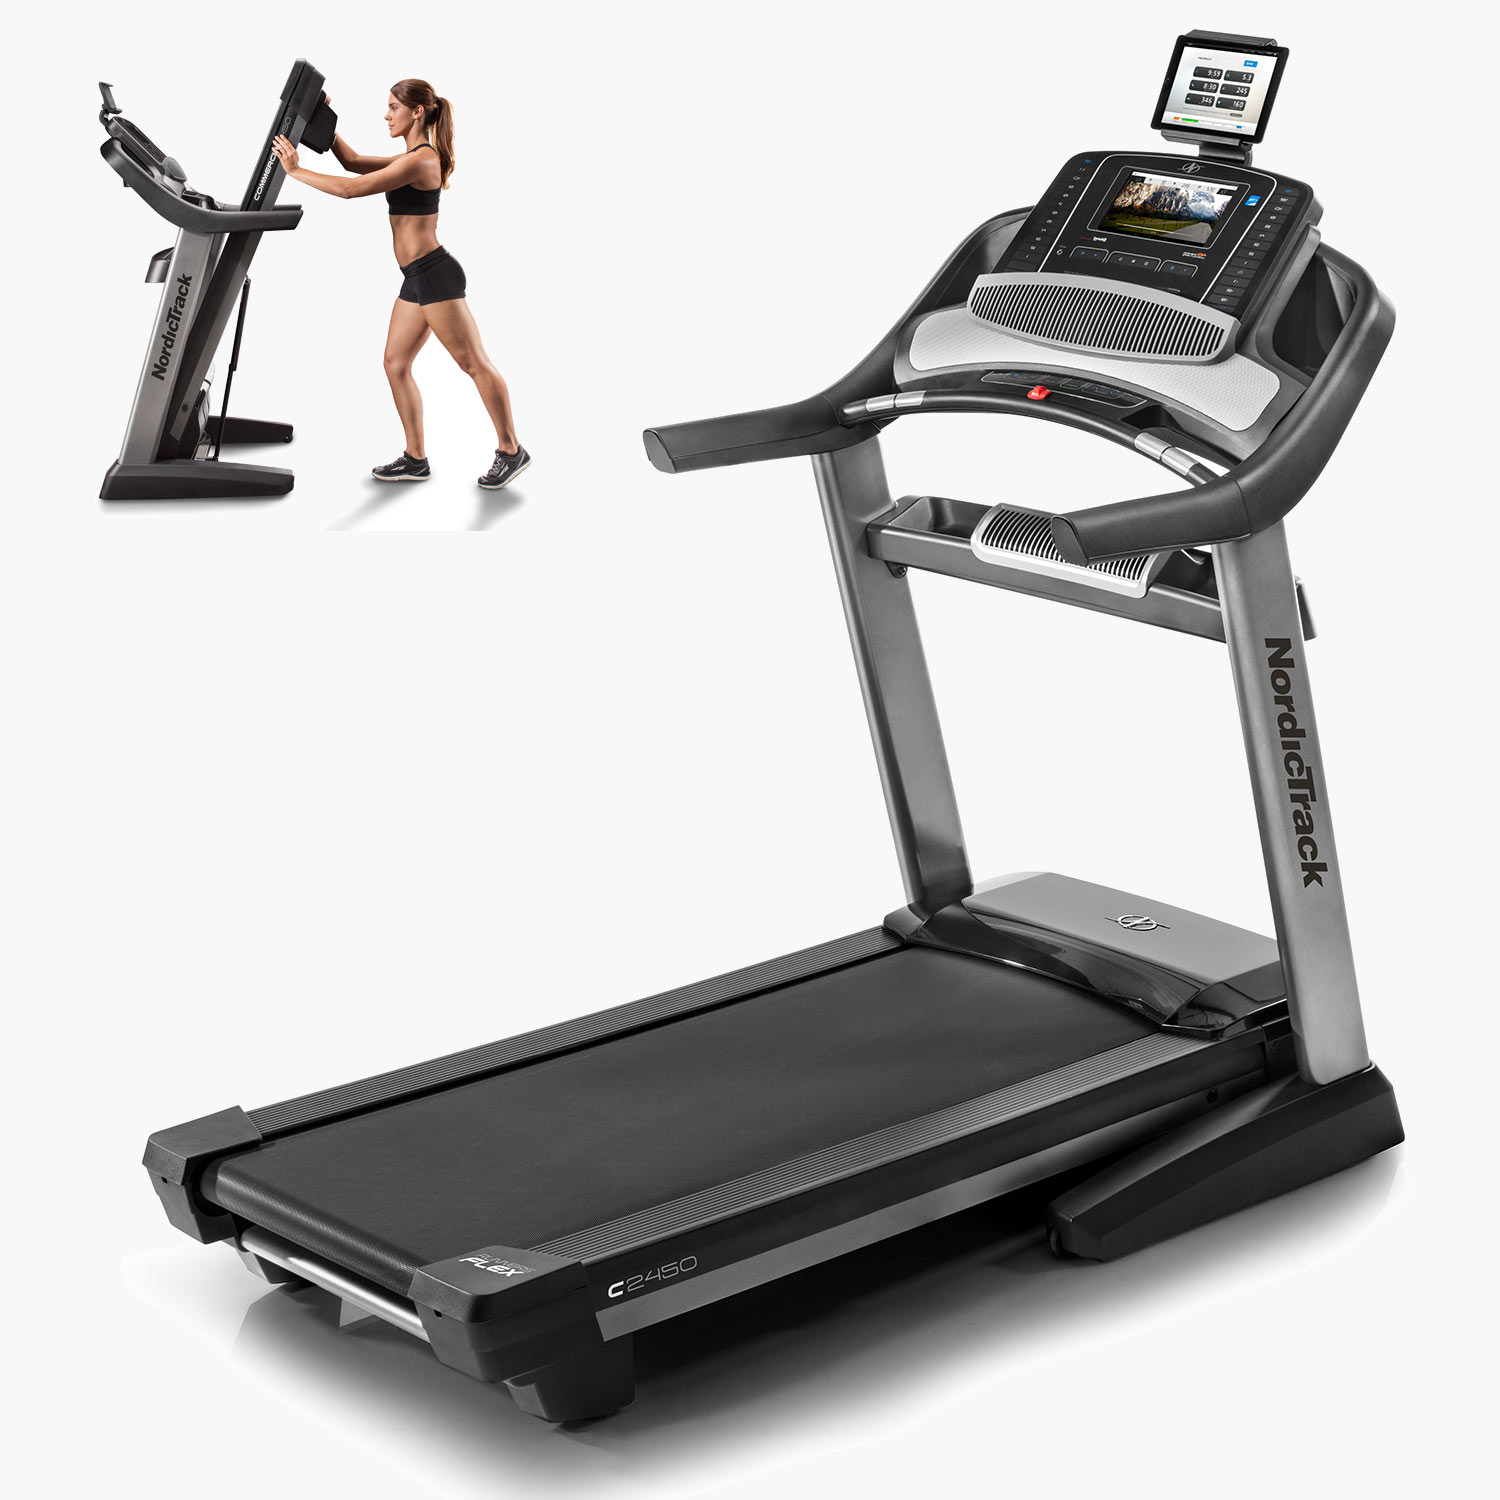 Commercial 2450 Review  A durable s a hard working treadmill that holds up to multiple users, daily runs and longer distances with nice design features included